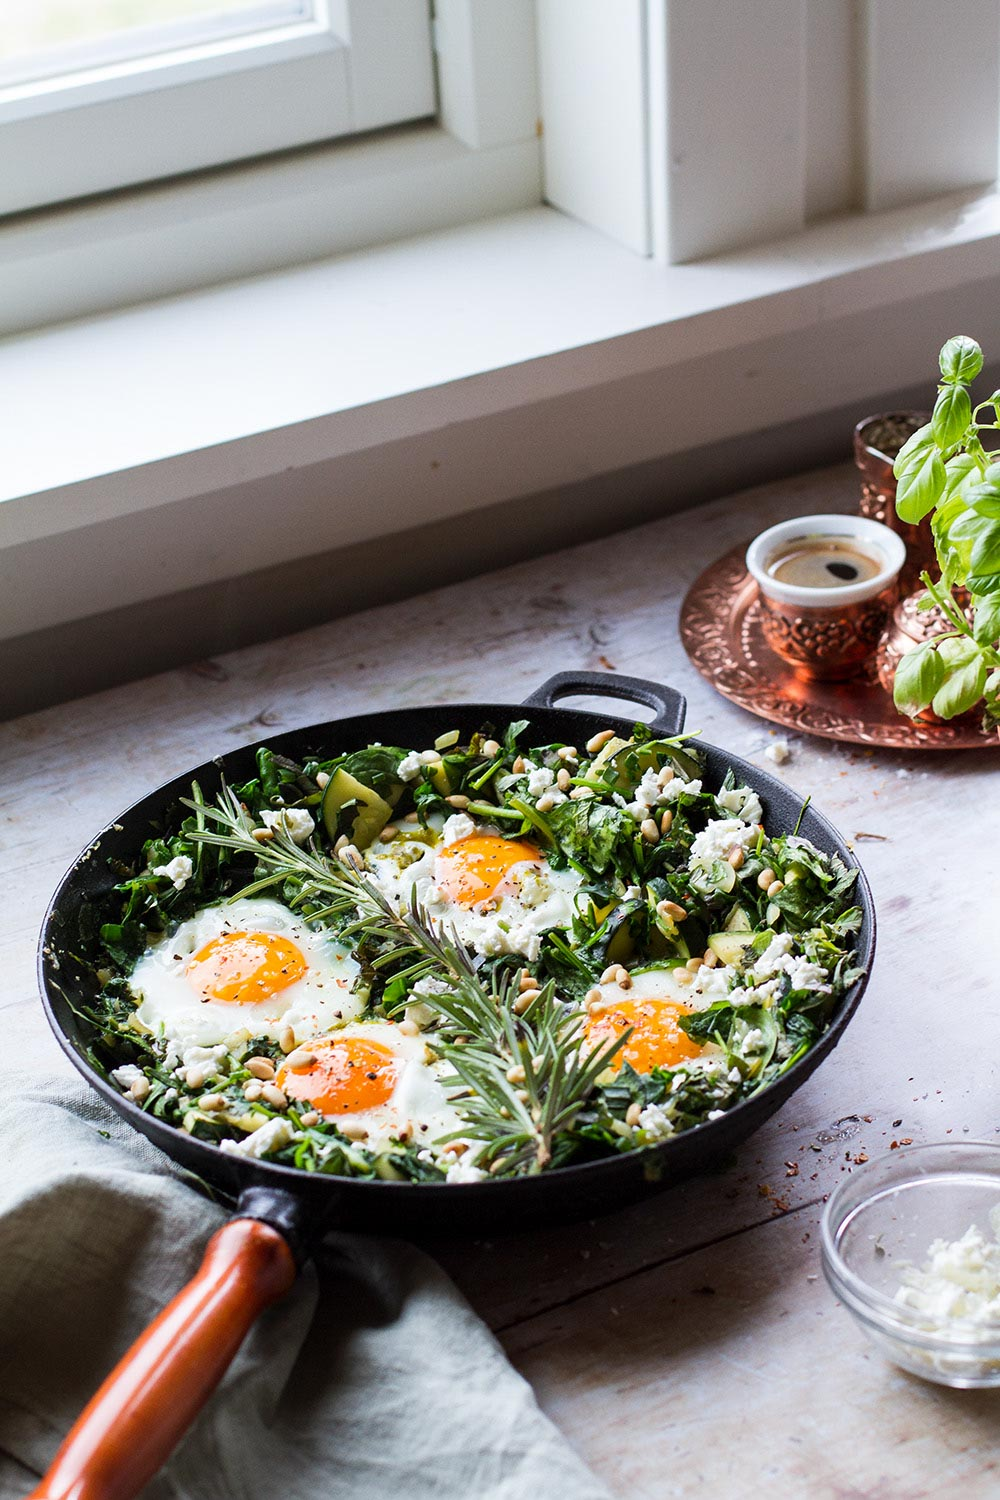 Skillet seen from a distance, with four eggs on top spinach and herbs.